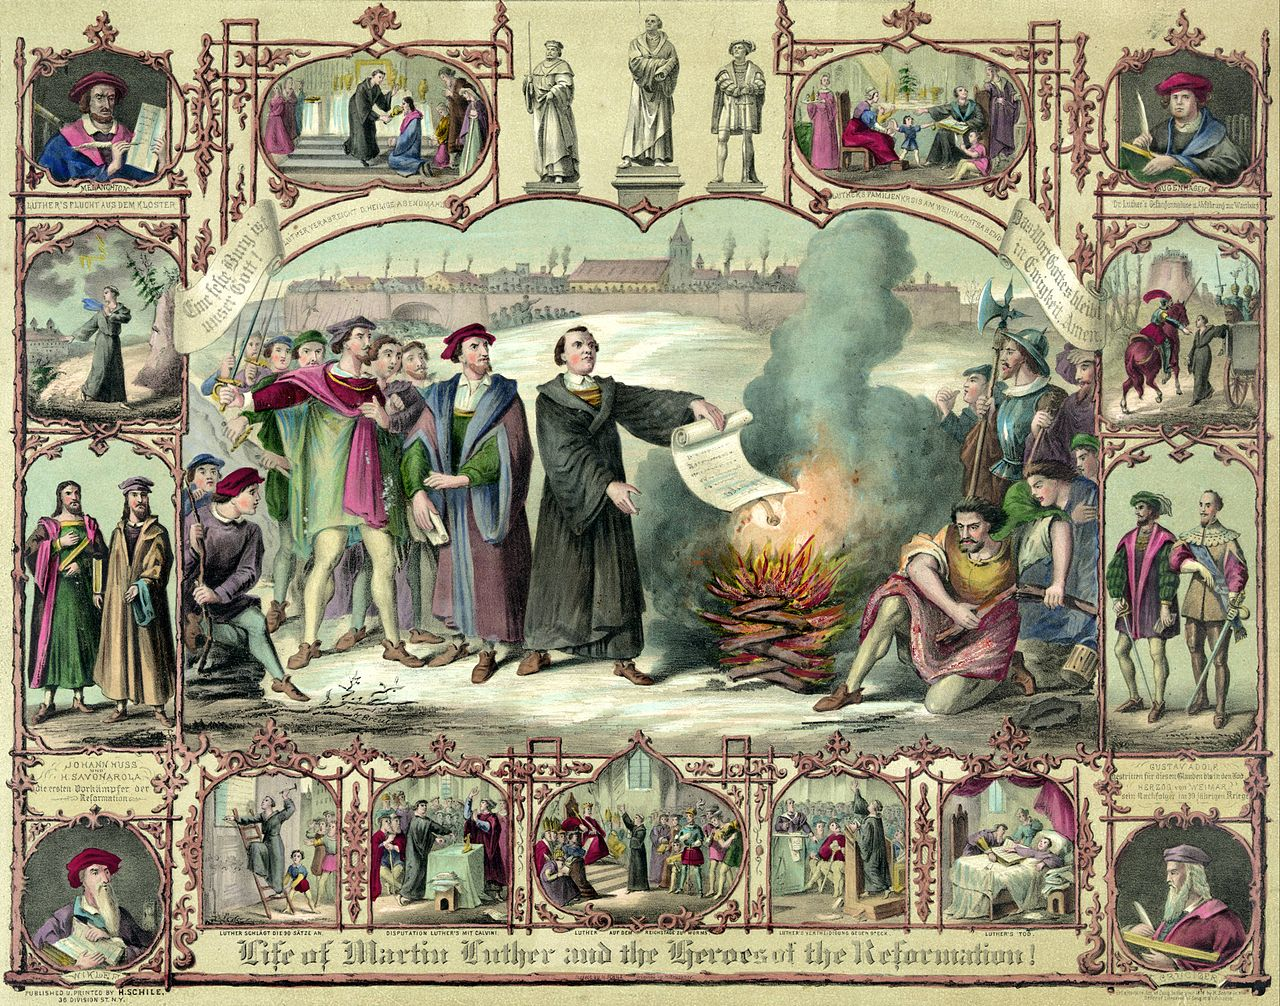 http://upload.wikimedia.org/wikipedia/commons/thumb/4/4e/Life_of_Martin_Luther.jpg/1280px-Life_of_Martin_Luther.jpg